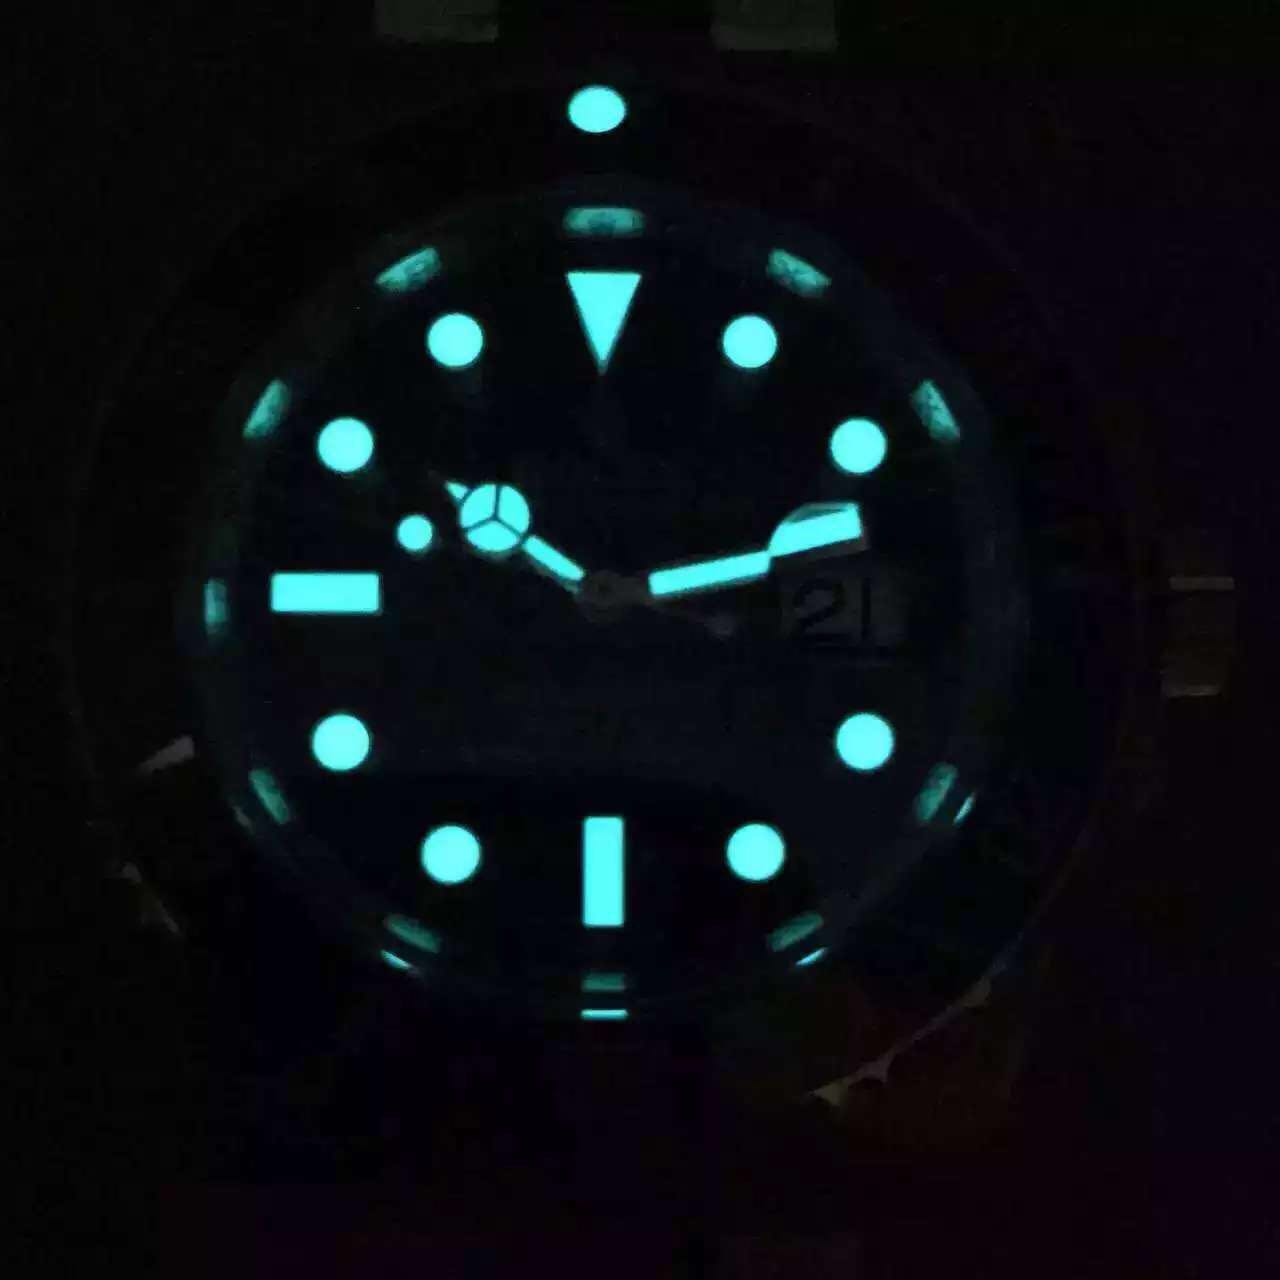 Blue Lume on 116610 LN Submariner